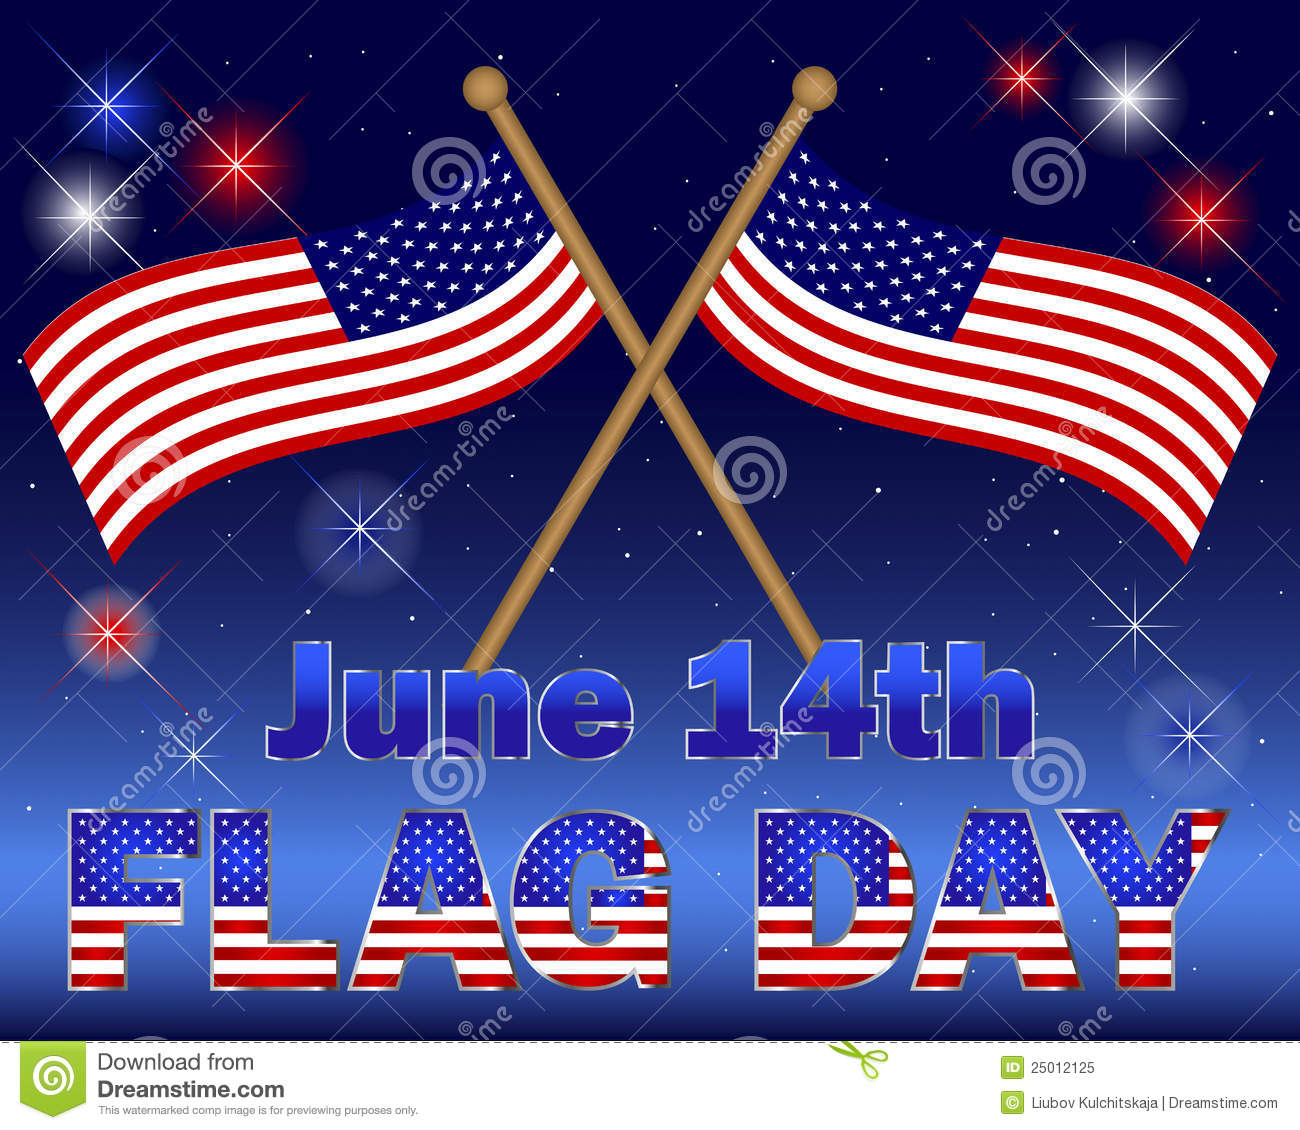 Flag day 2017 clipart png free stock 33 + Best Flag Day HD Images and Cliparts For Friends And Family ... png free stock